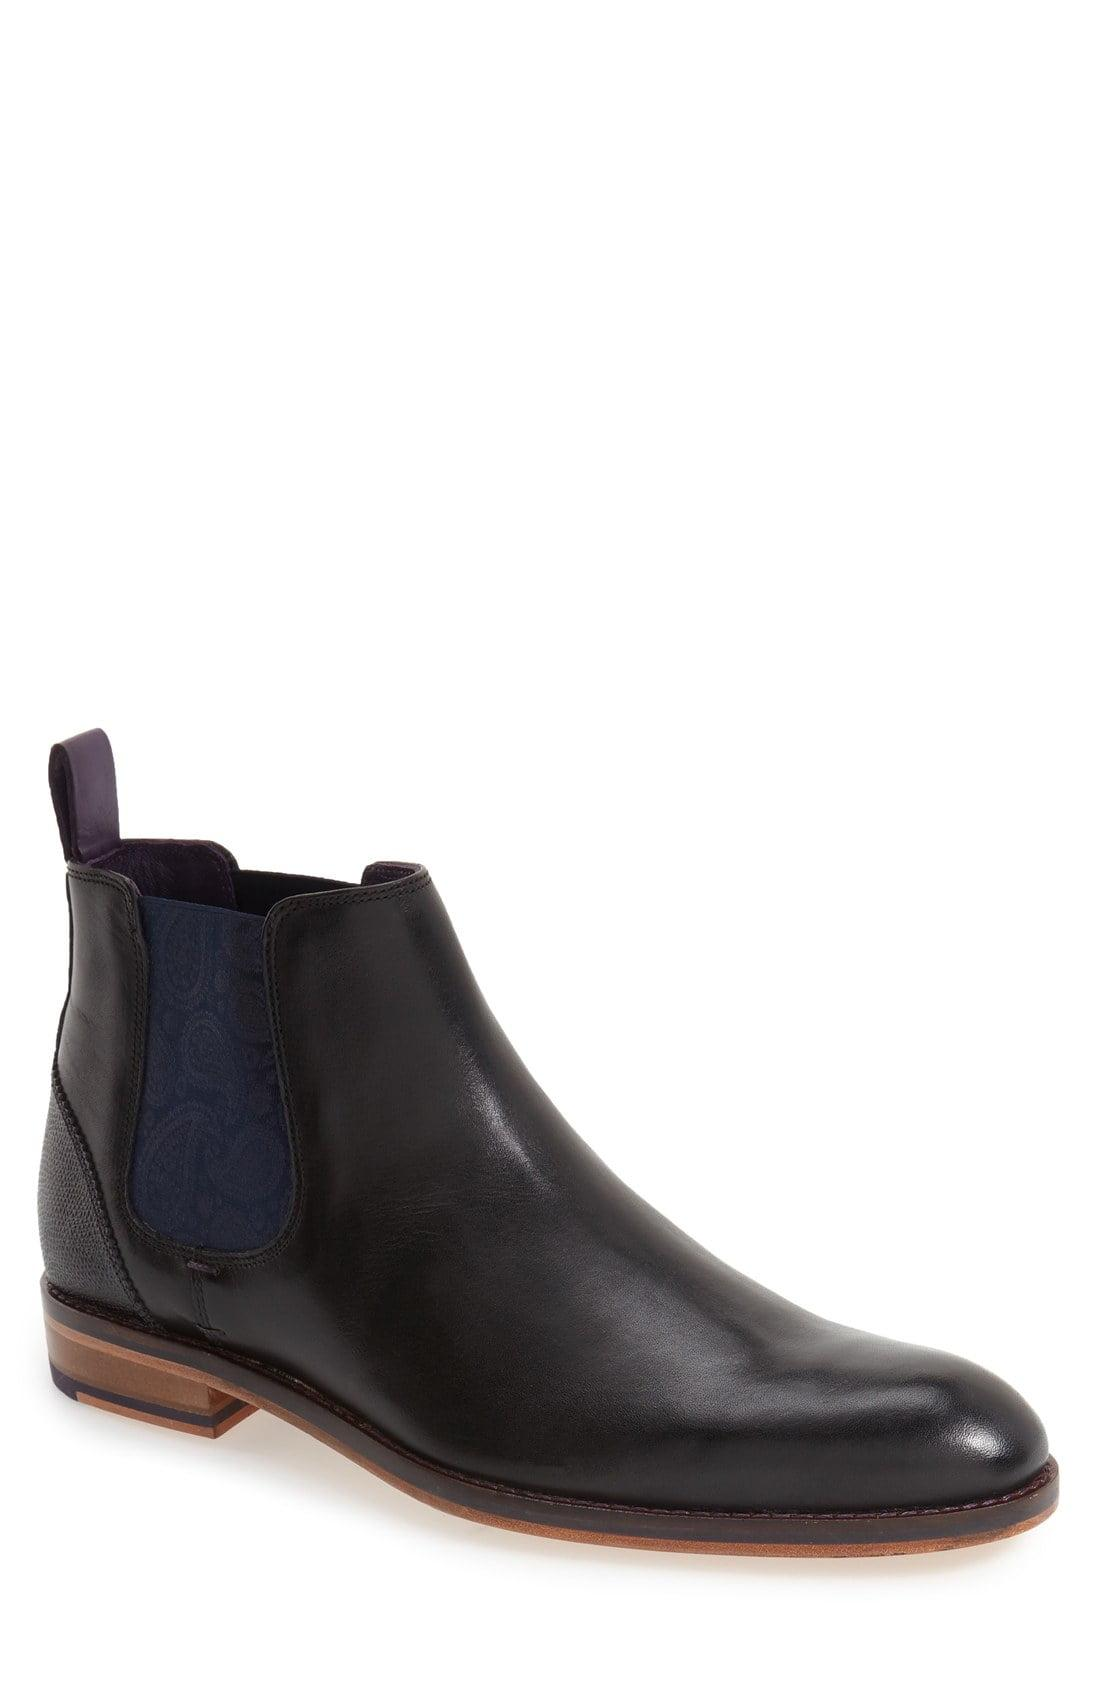 7e35f3d47 Lyst - Ted Baker  camroon 4  Chelsea Boot in Black for Men - Save 53%